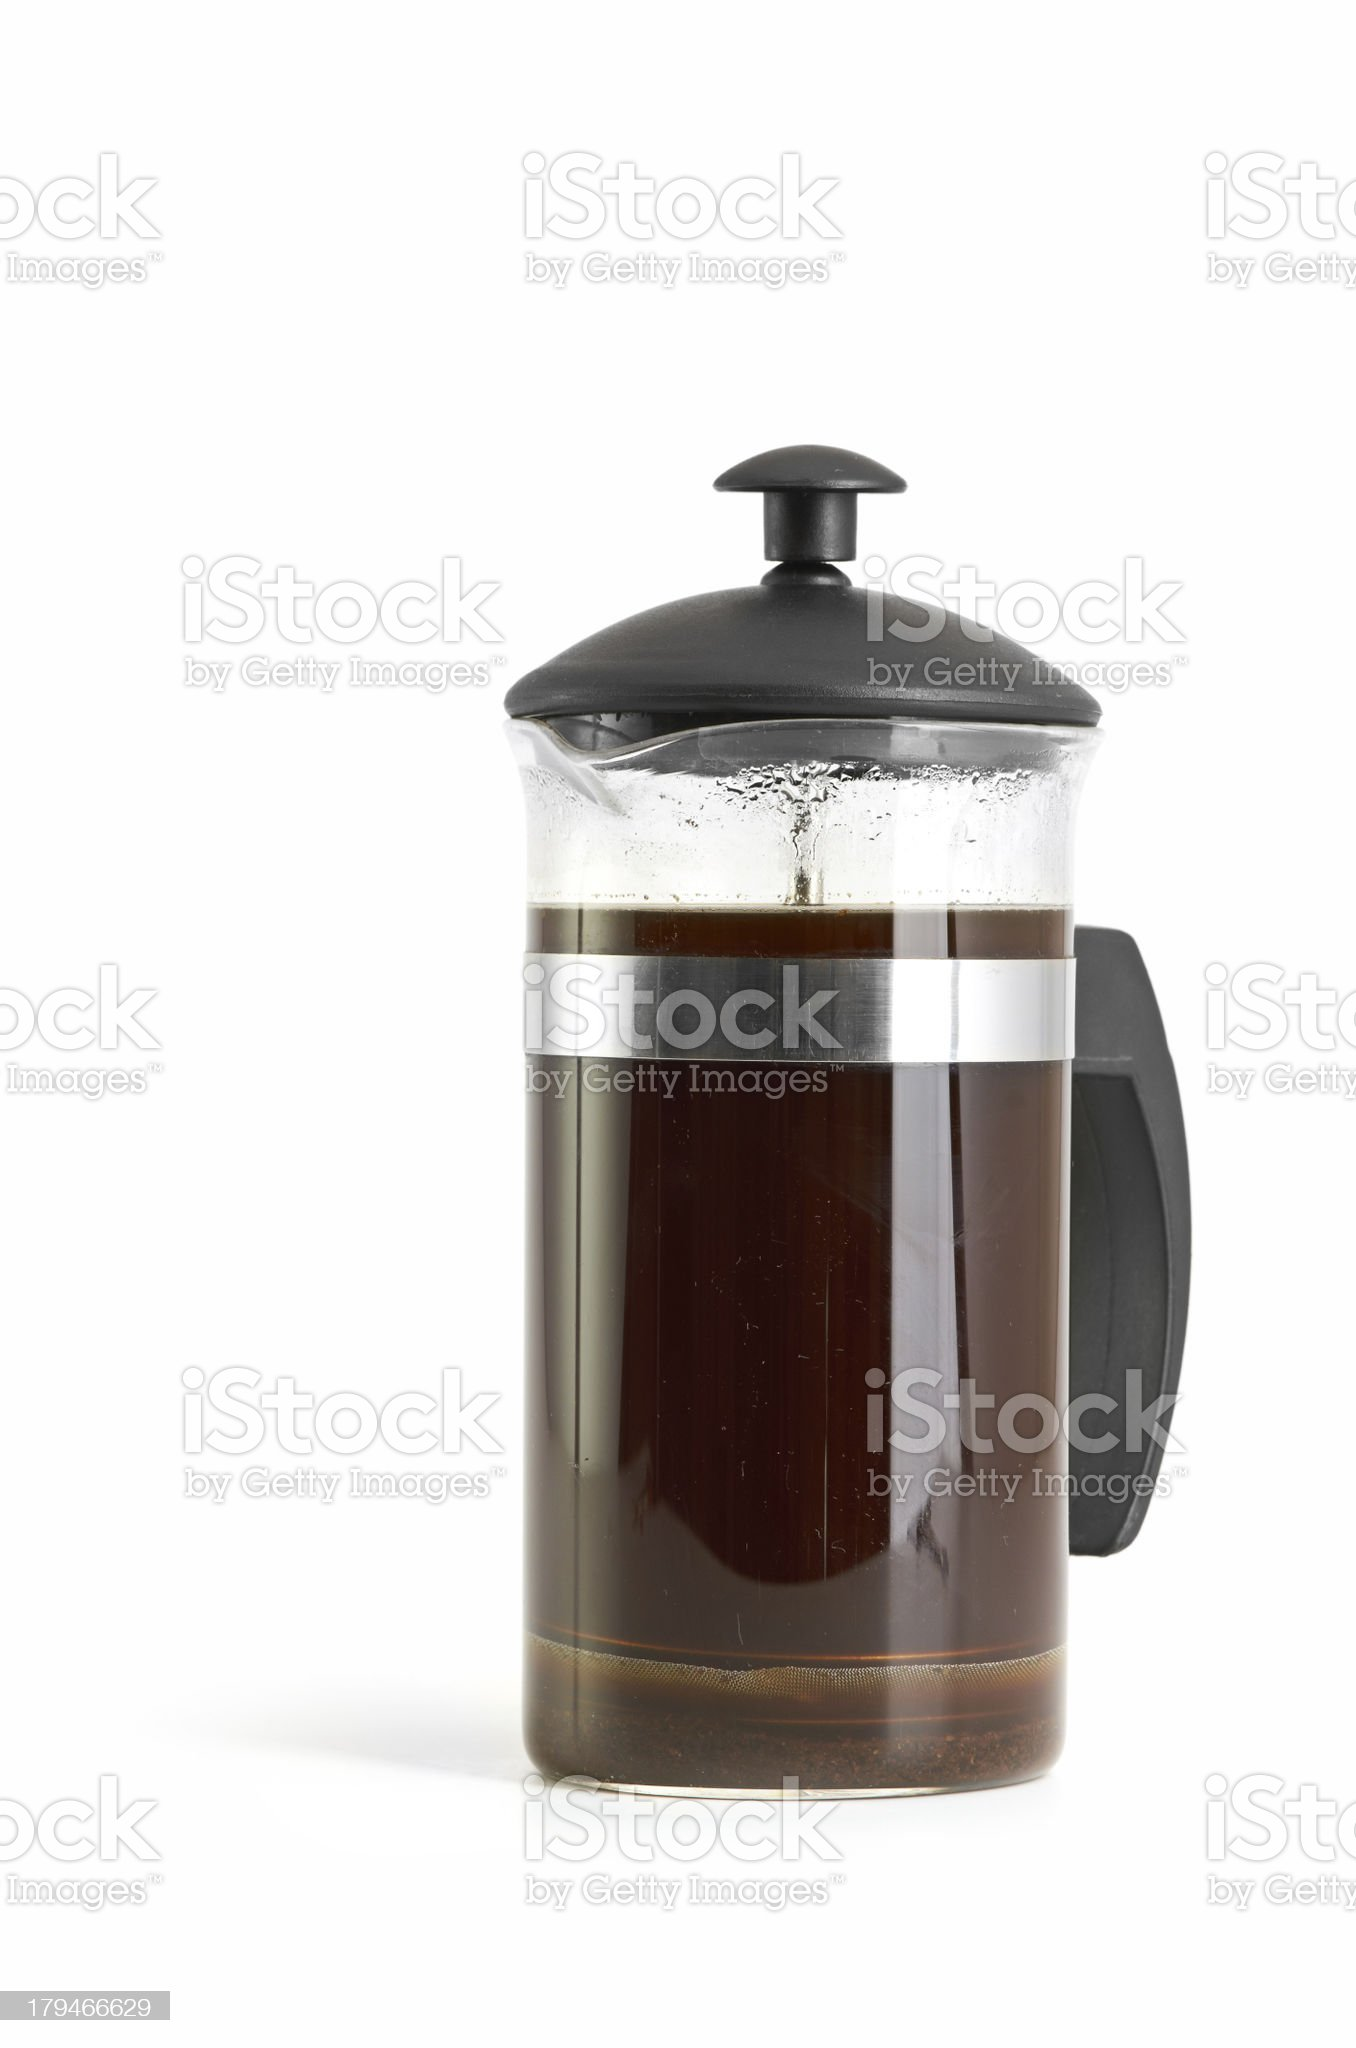 French press coffee maker royalty-free stock photo